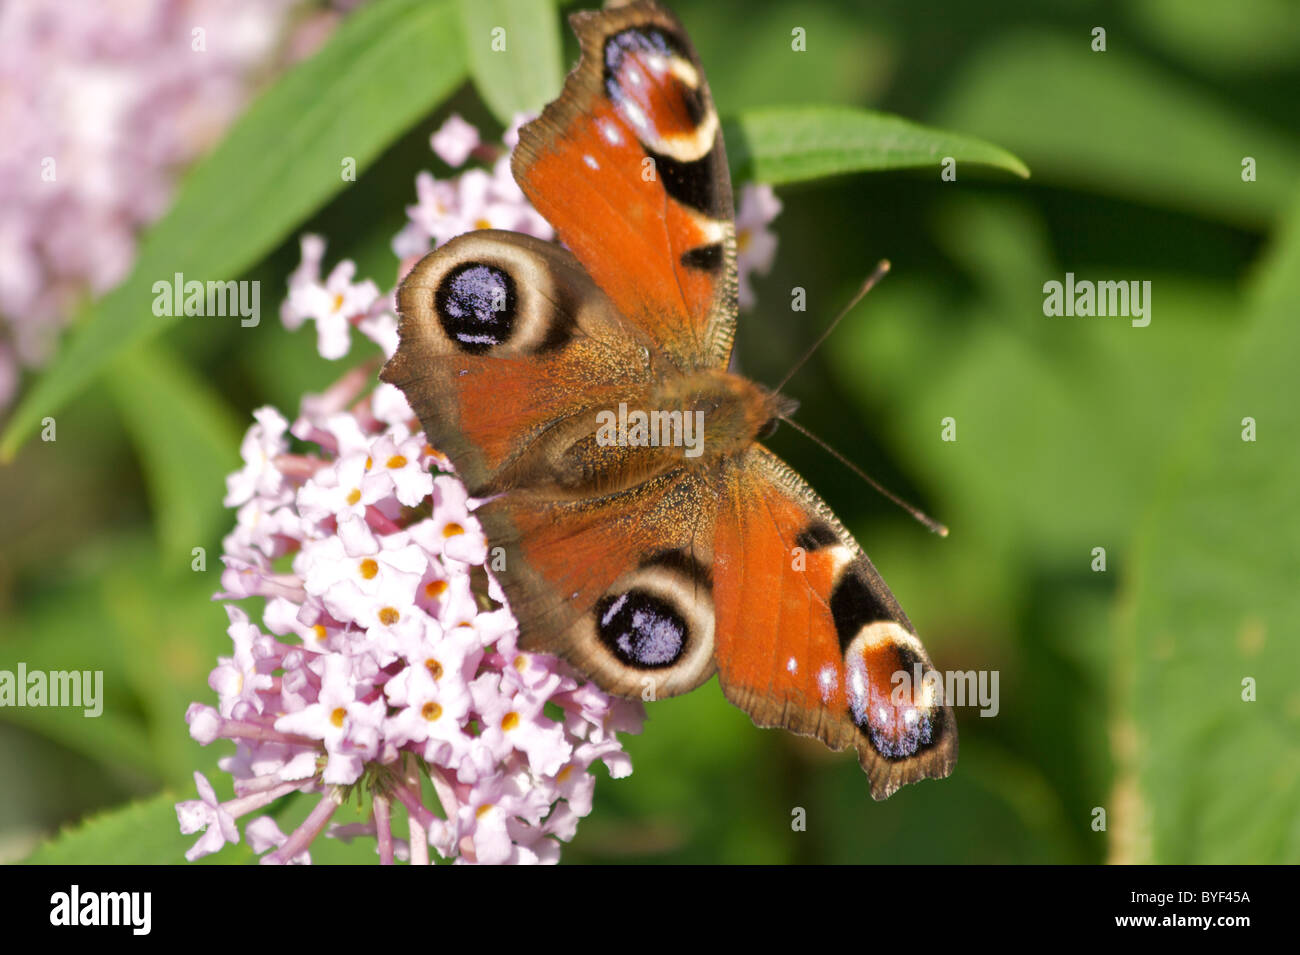 Peacock butterfly (Inachis io) on Buddlea flowers (Buddleia davidii) also known as 'butterfly bush' - Stock Image